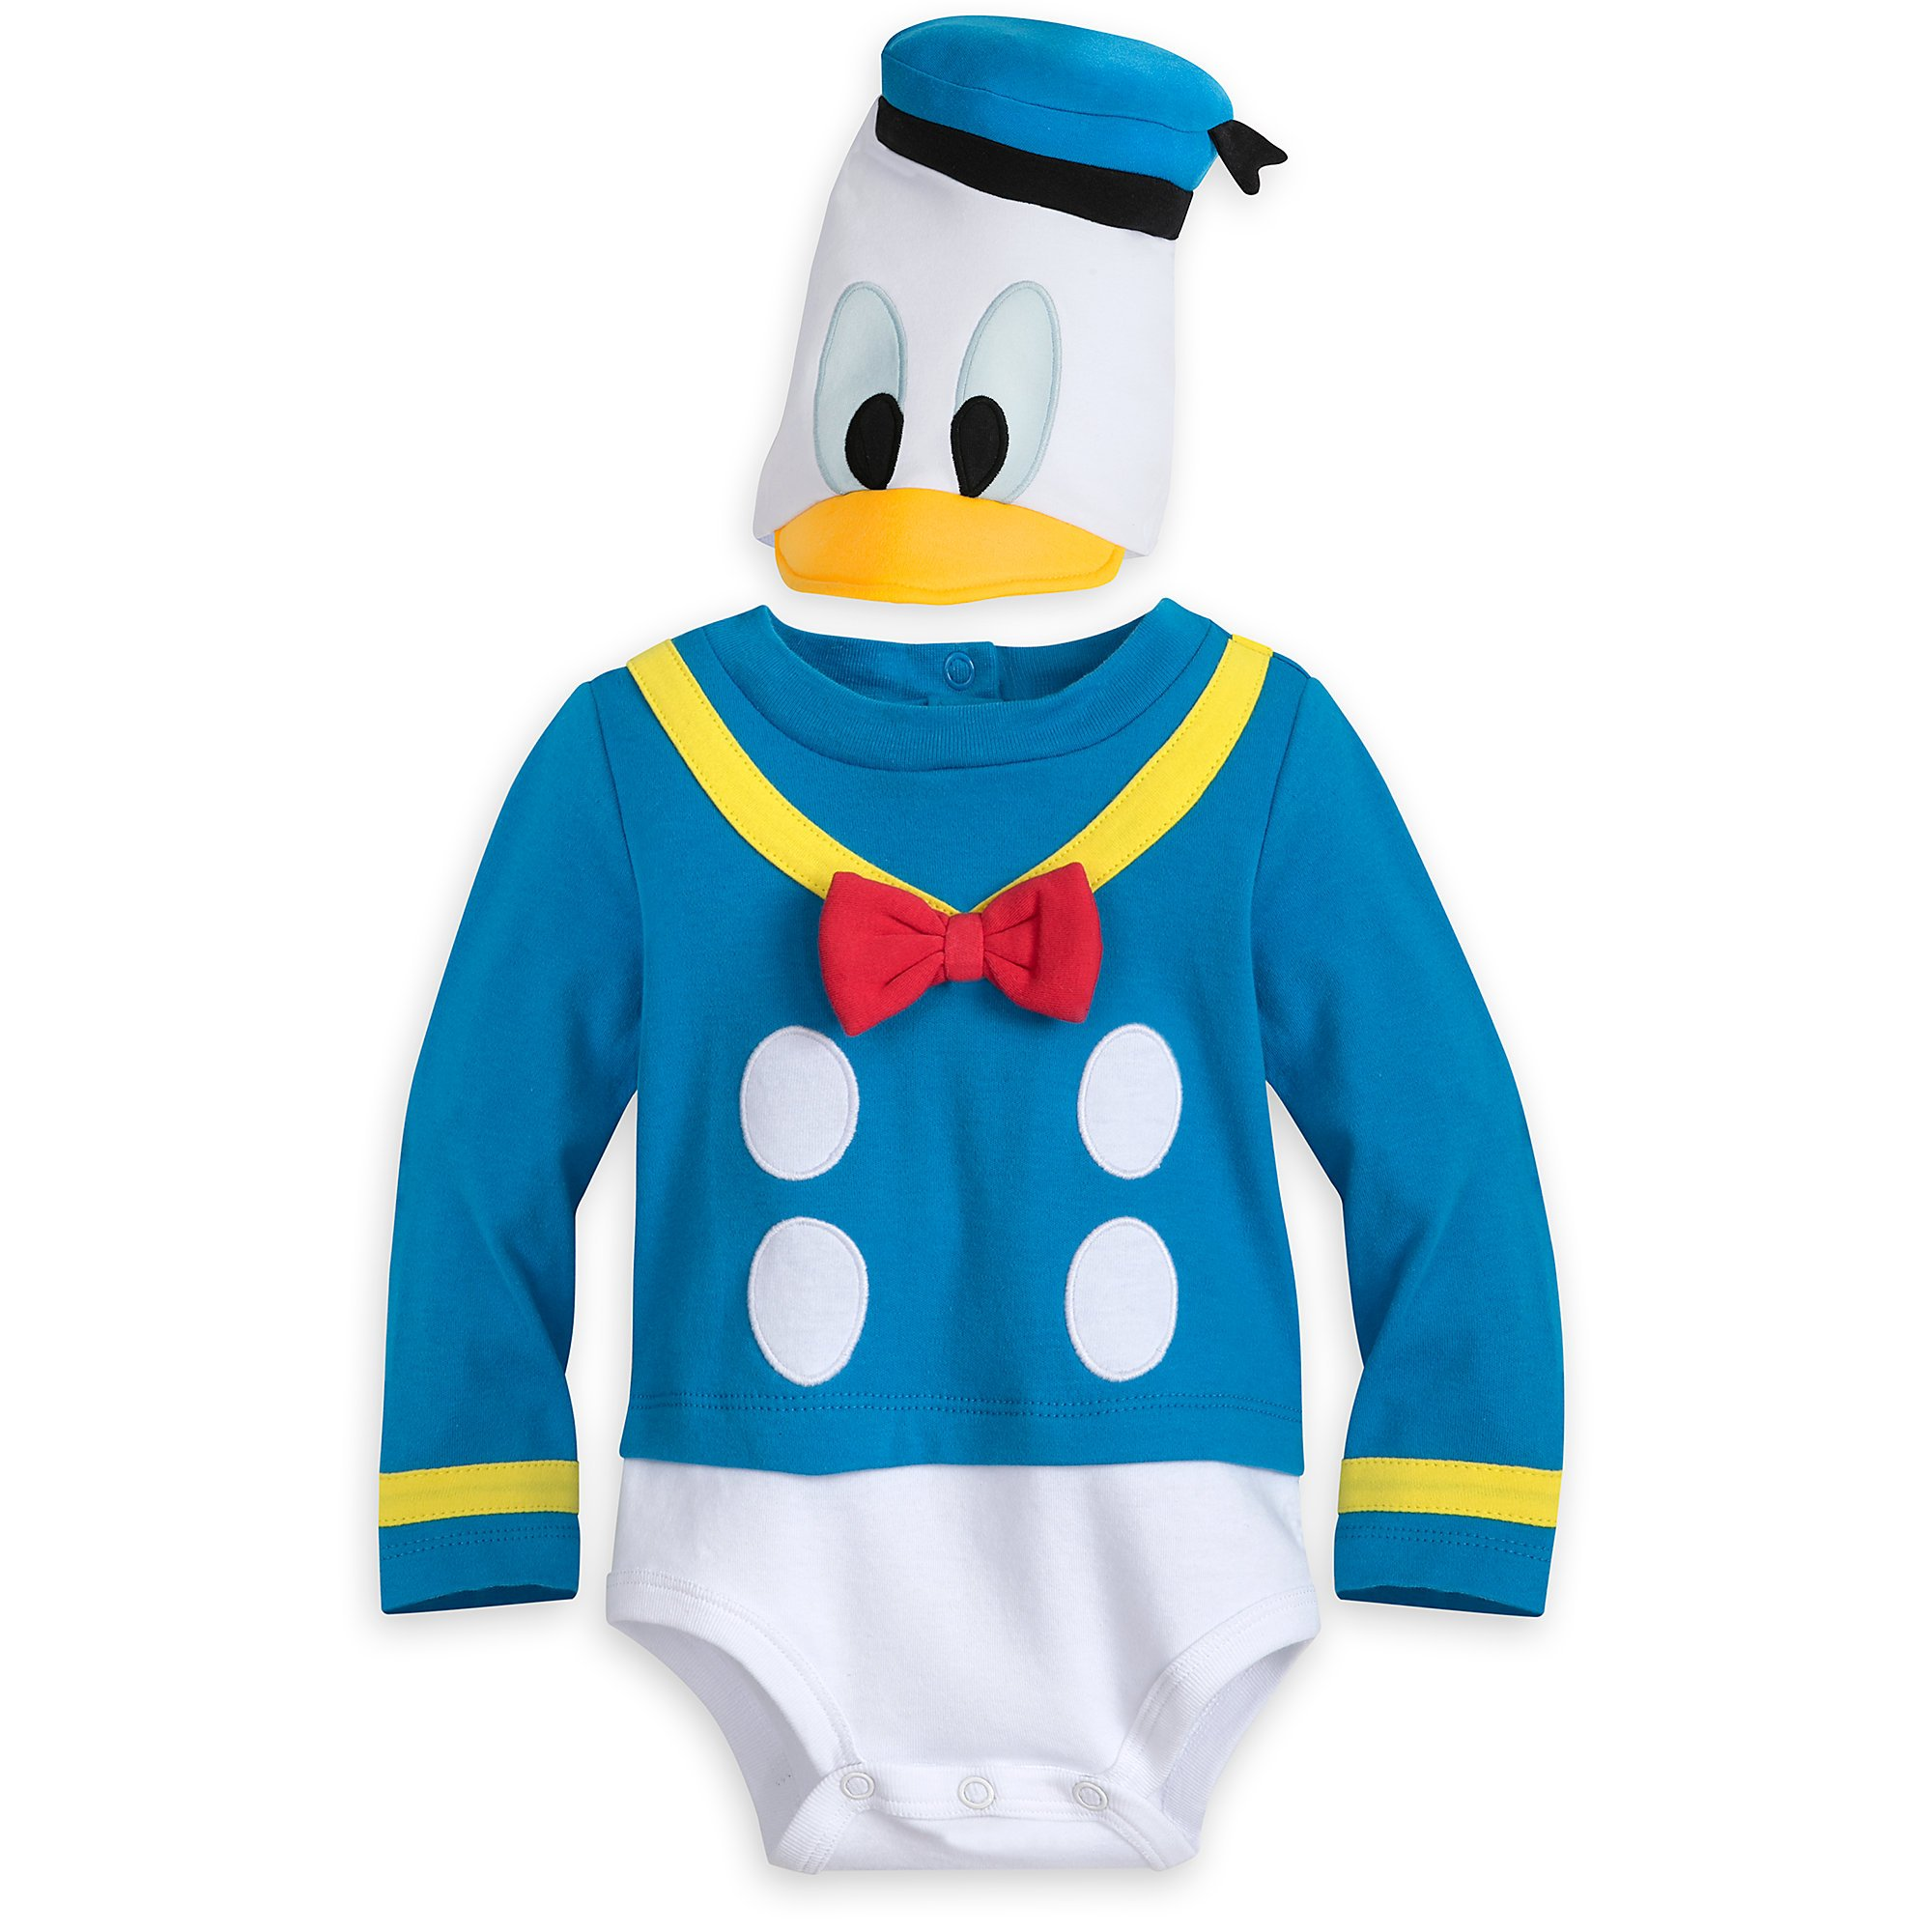 Disney Donald Duck Costume Bodysuit for Baby Size 9-12 MO Multi